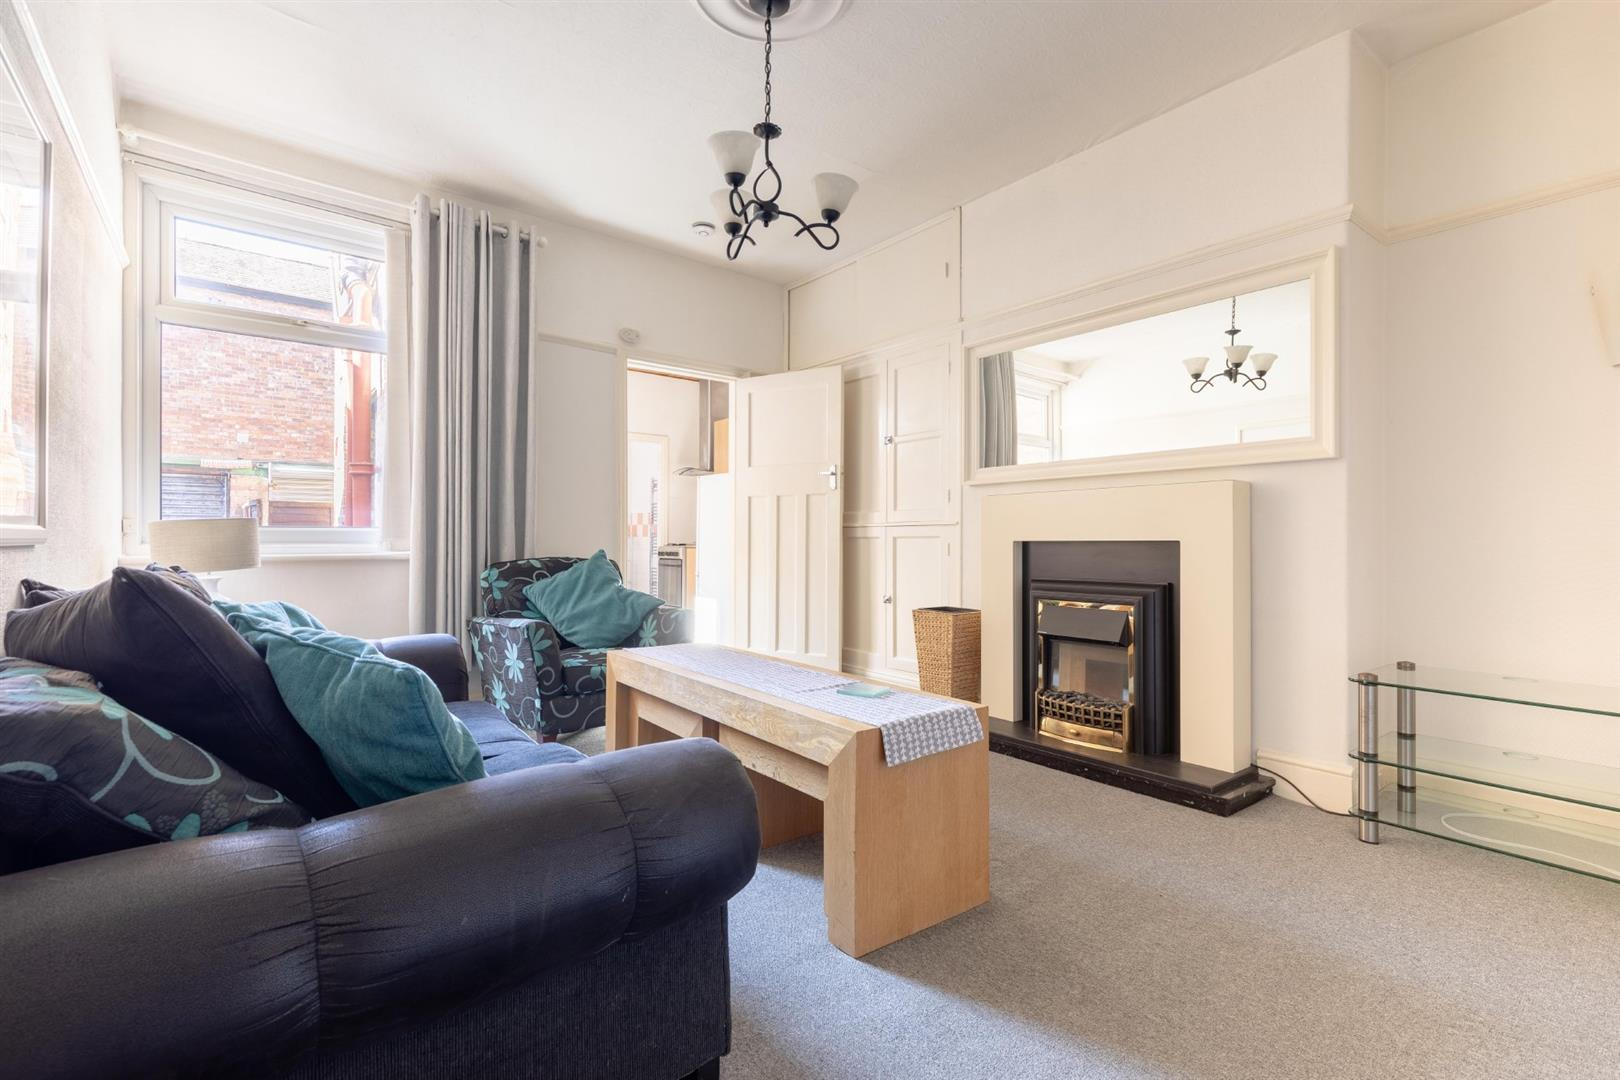 2 bed flat to rent in Newcastle Upon Tyne, NE6 5SS 0